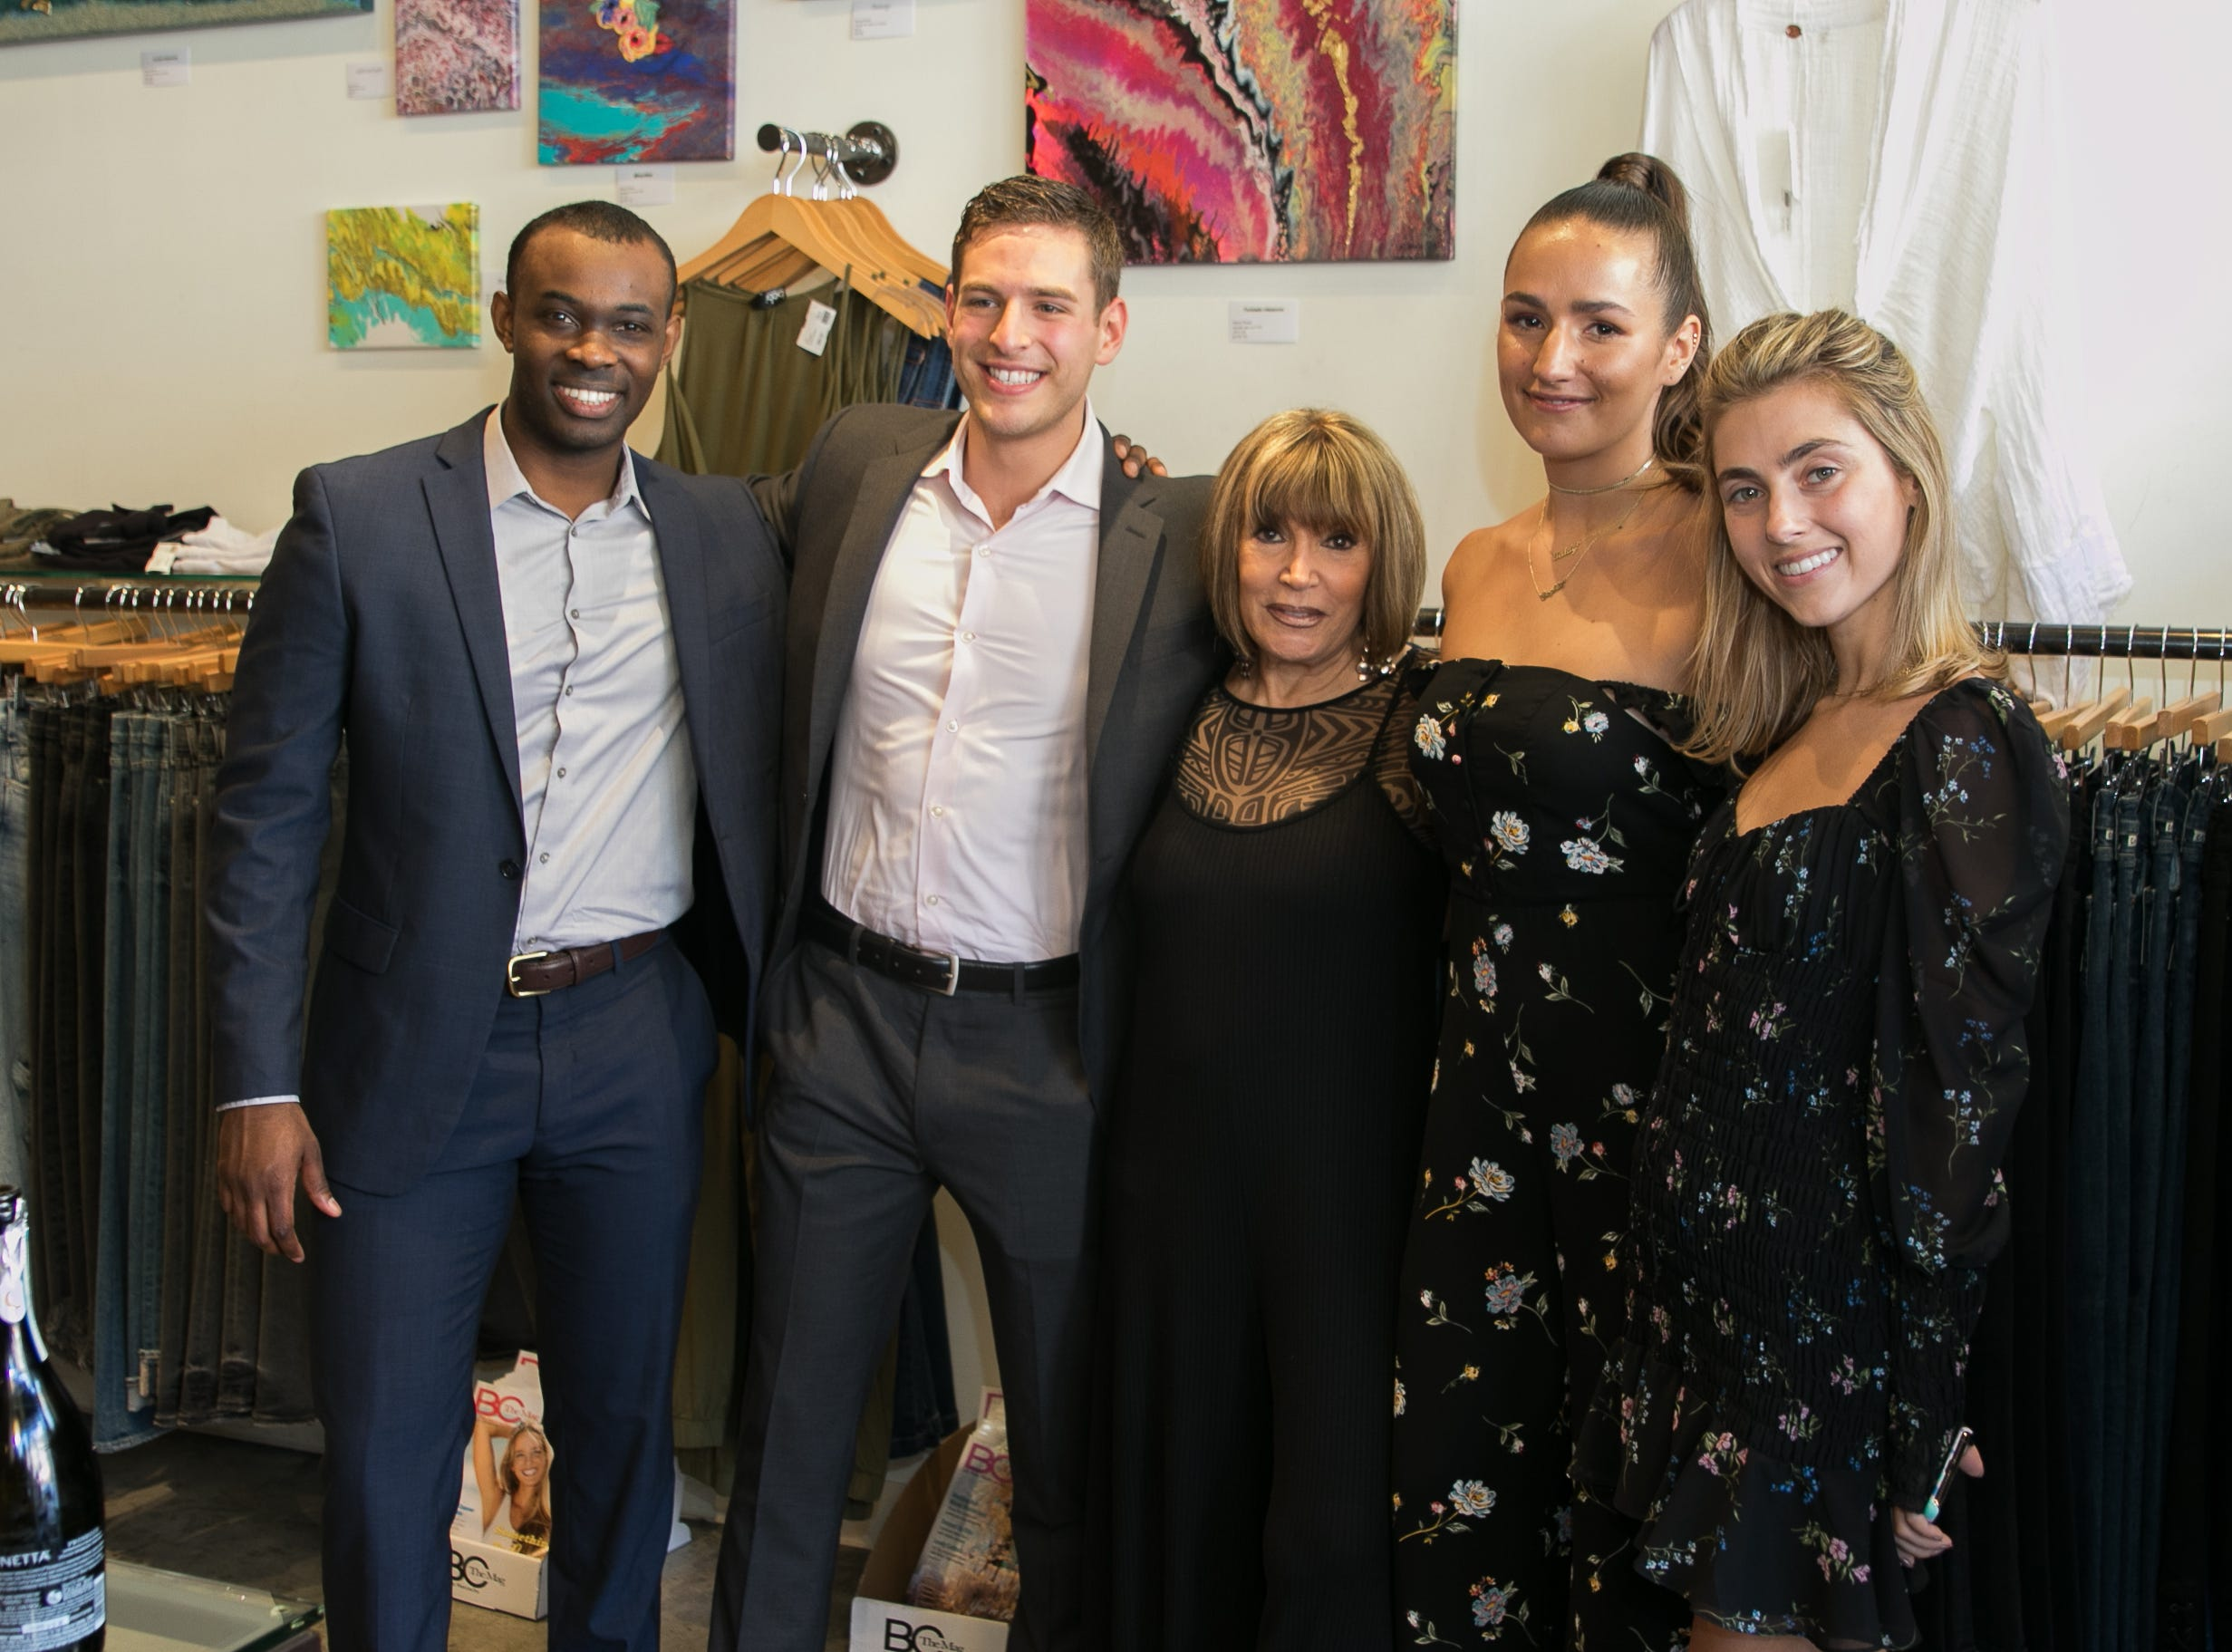 Aaron Walters, Jason Ovryn, Carry Inc.,Grace Guido, Sophie and Charlotte Bickley. Instagram fashion stylists sisters Sophie and Charlotte Bickley visited Ambience Boutique in Edgewater. 04/13/2019